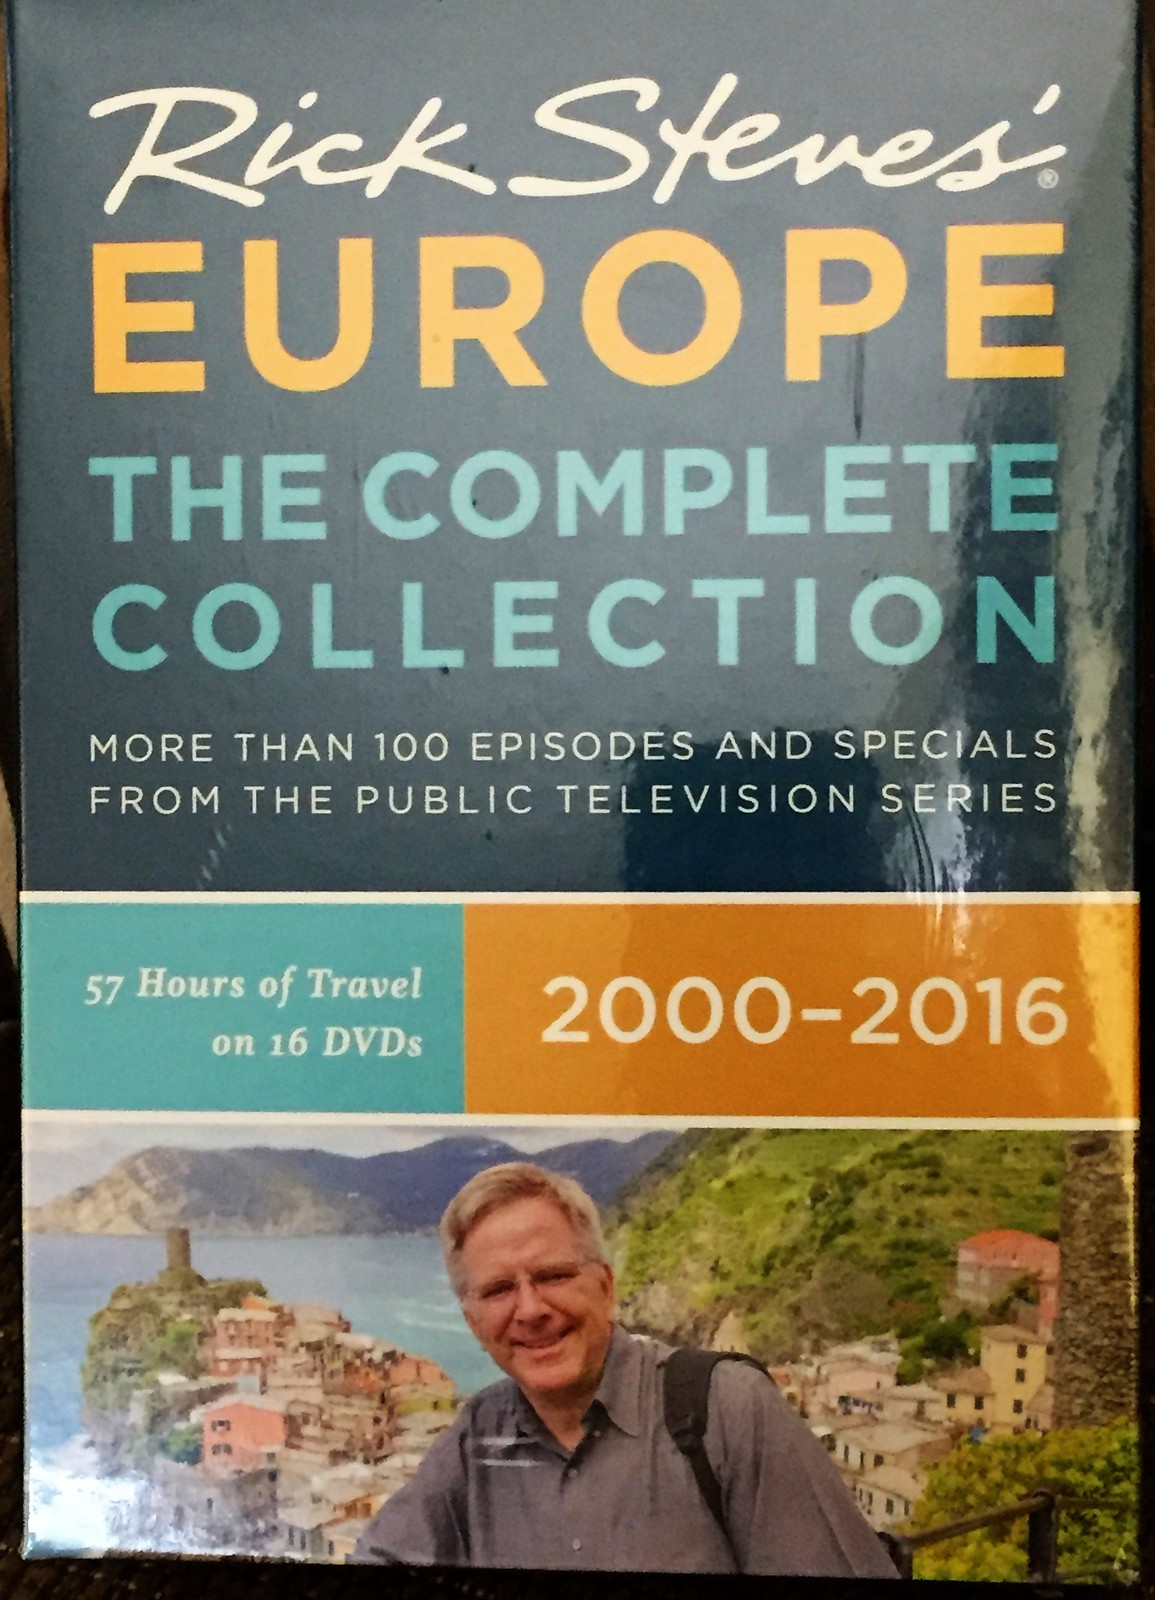 Rick Steves' Europe The Complete Collection 2000-2016 set of 16 DVDs sealed